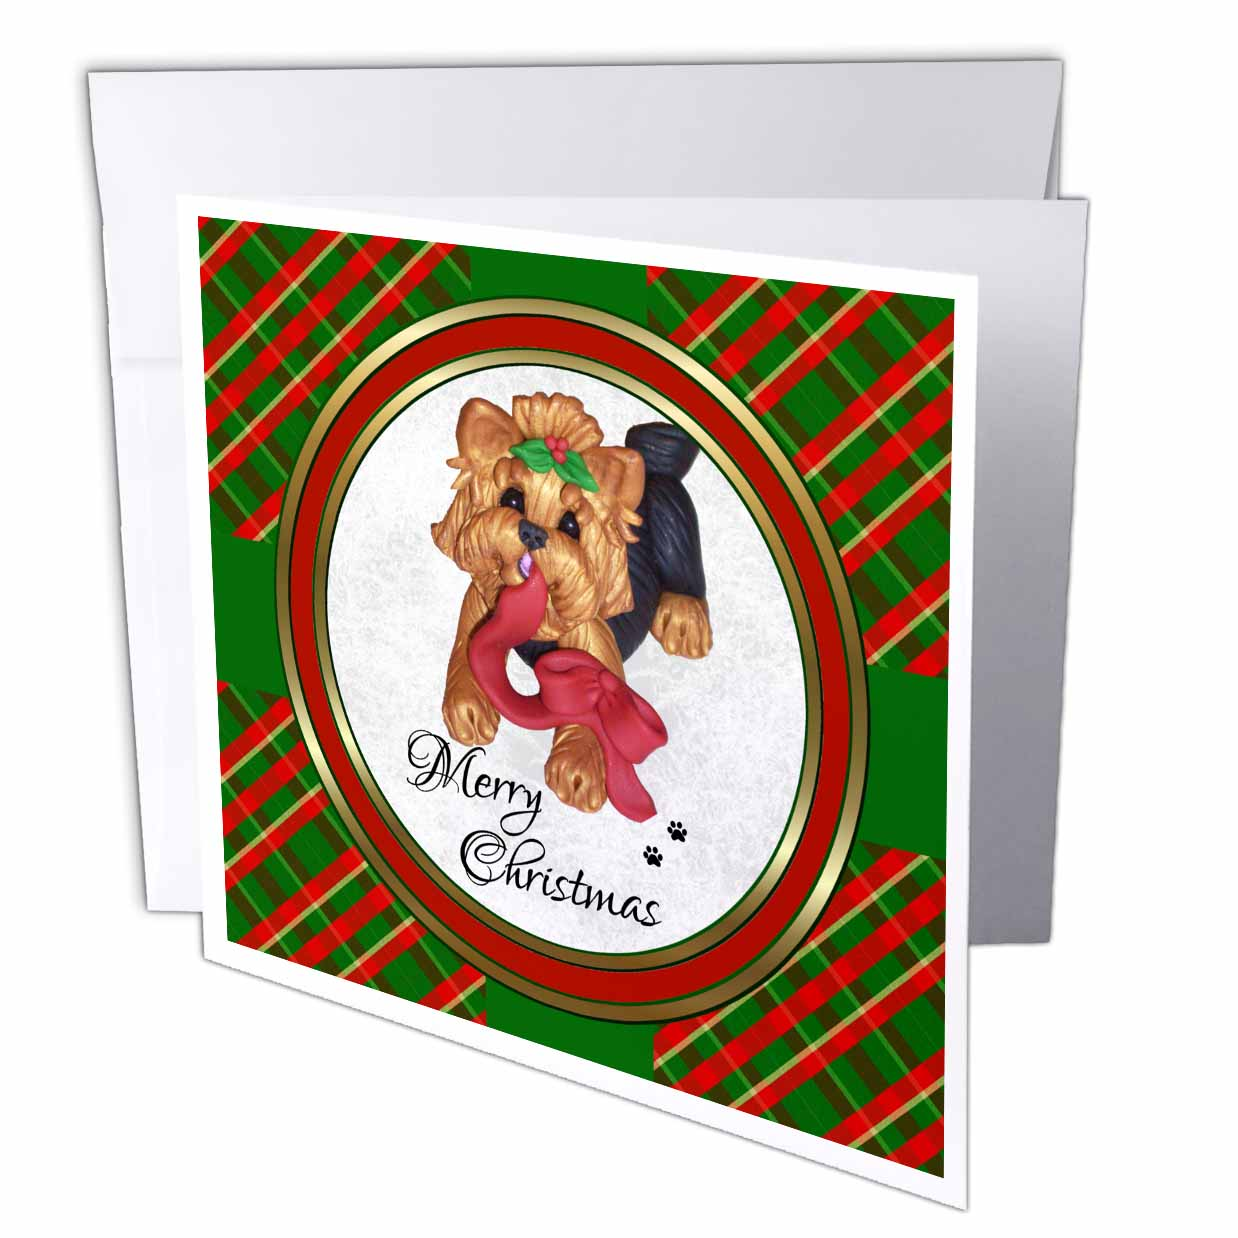 3dRose Cute Merry Christmas Red Ribbon Yorkie Yorkshire Terrier Dog Art, Greeting Cards, 6 x 6 inches, set of 12